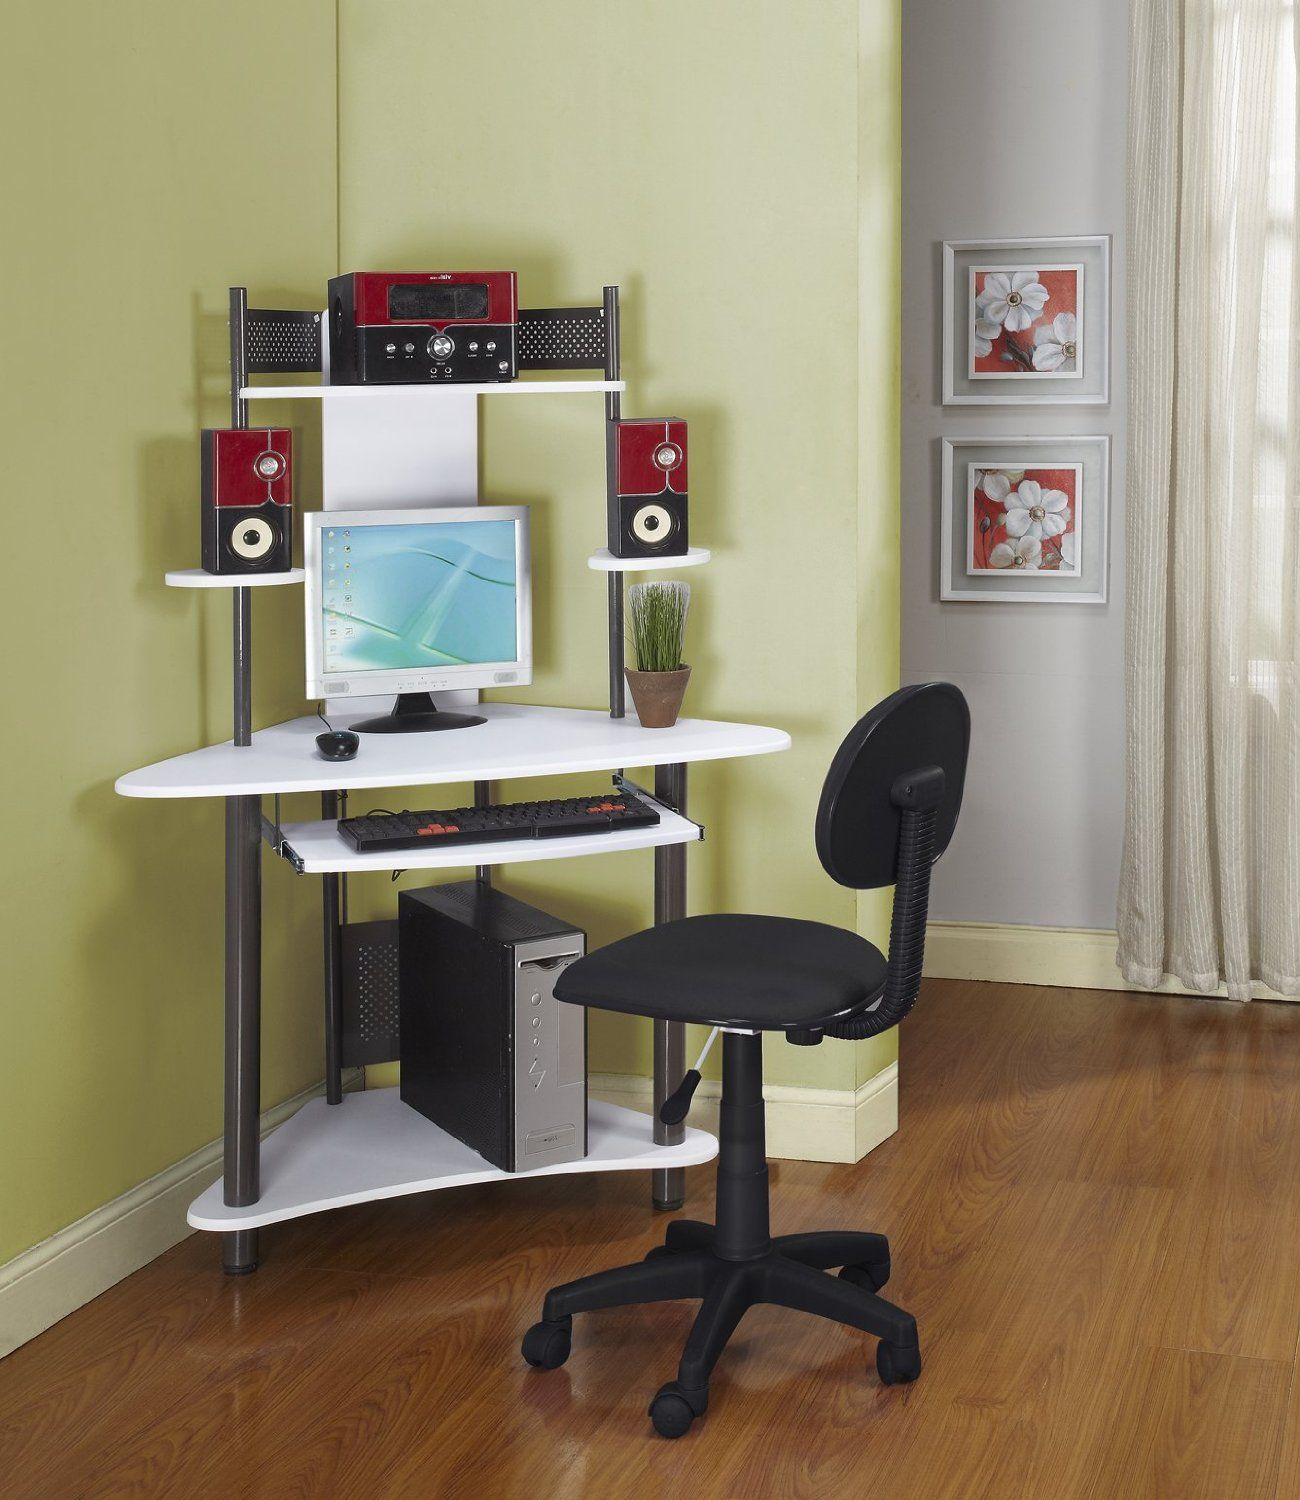 Ideas And Tips To Choose The Best Desk For Small Space